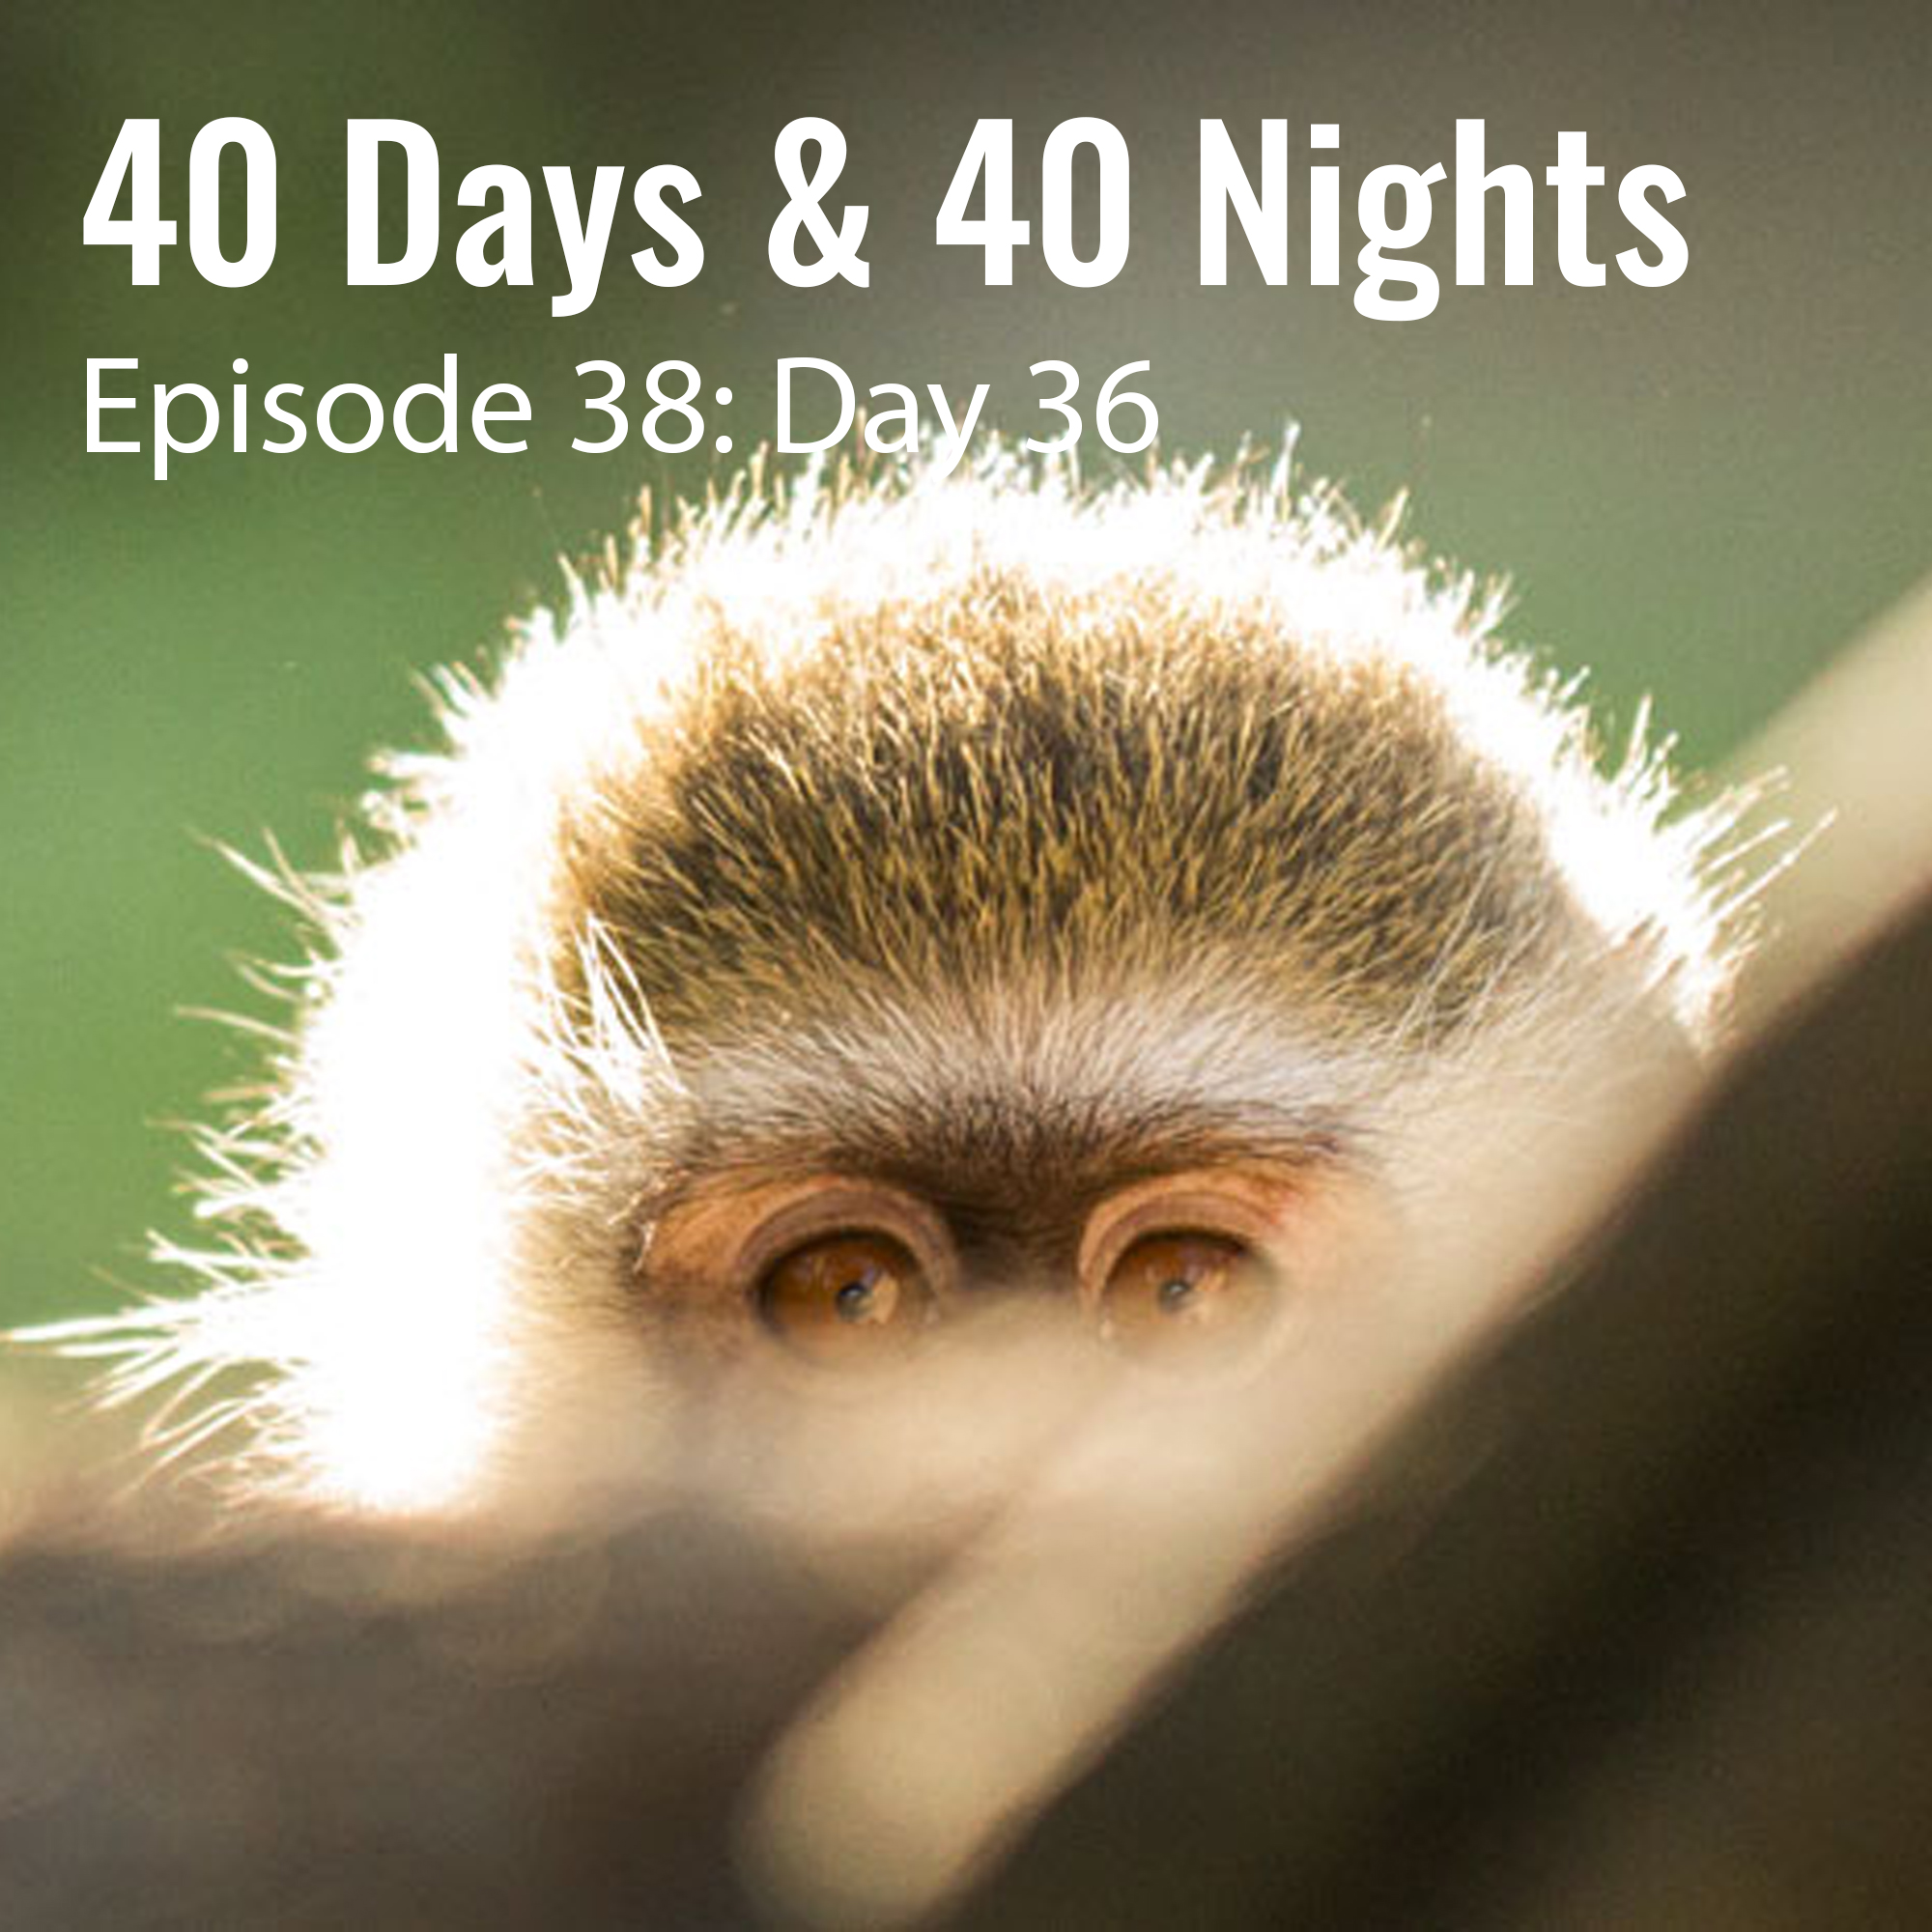 Day-36 40 Days and 40 Nights boyd Varty